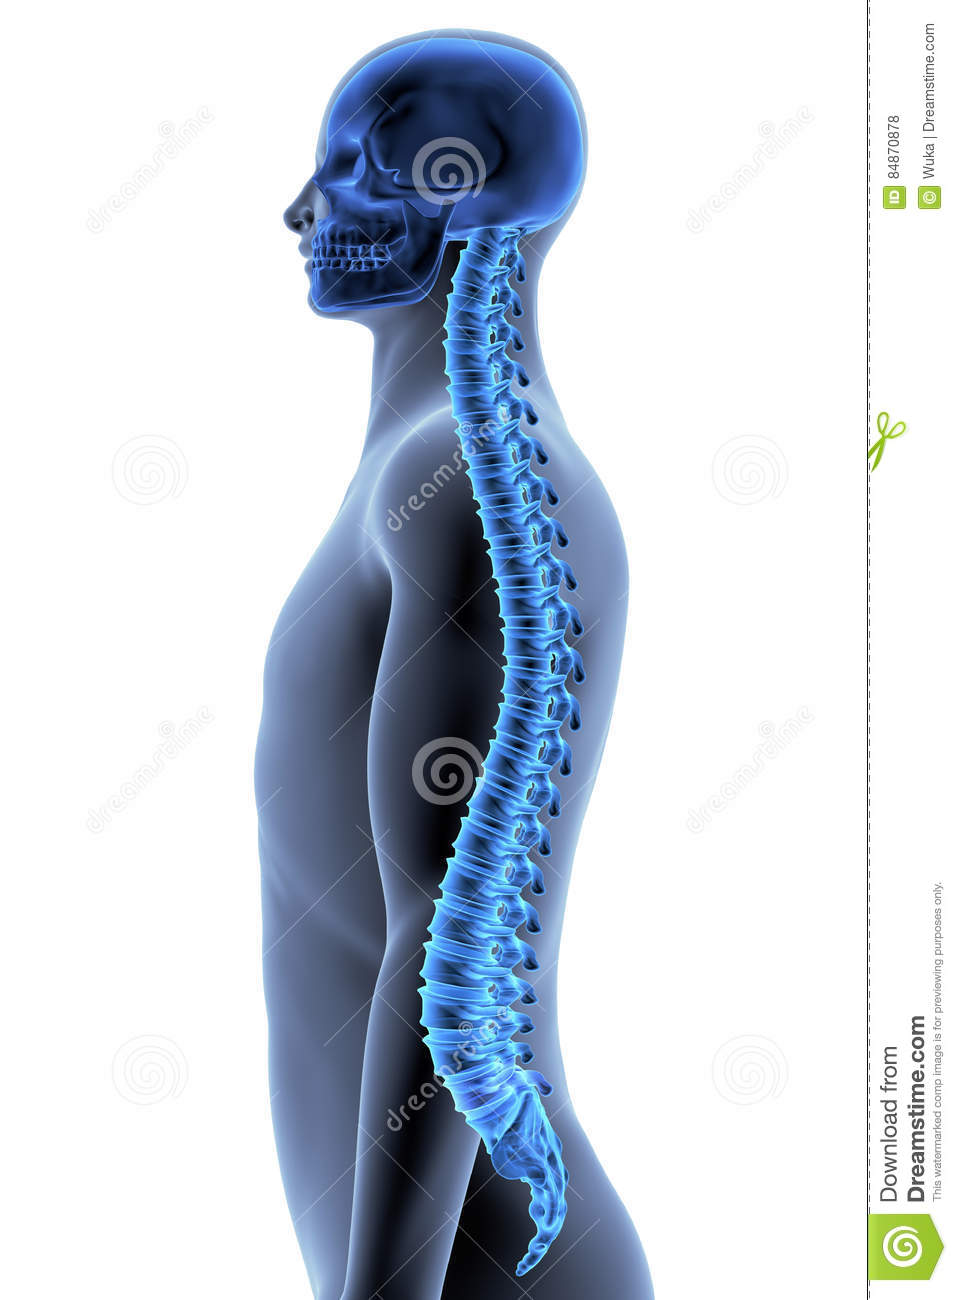 Human Body Bone Names  mon Bone Names Effortless Movement further Stock Illustration Human Body Spine Side View X Ray Effect D Illustration Image84870878 besides List Of Joints In The Human Body together with Diagram Of Internal Organs together with Miku Hatsune In Minecraft 317332859. on schematic of the human skeleton